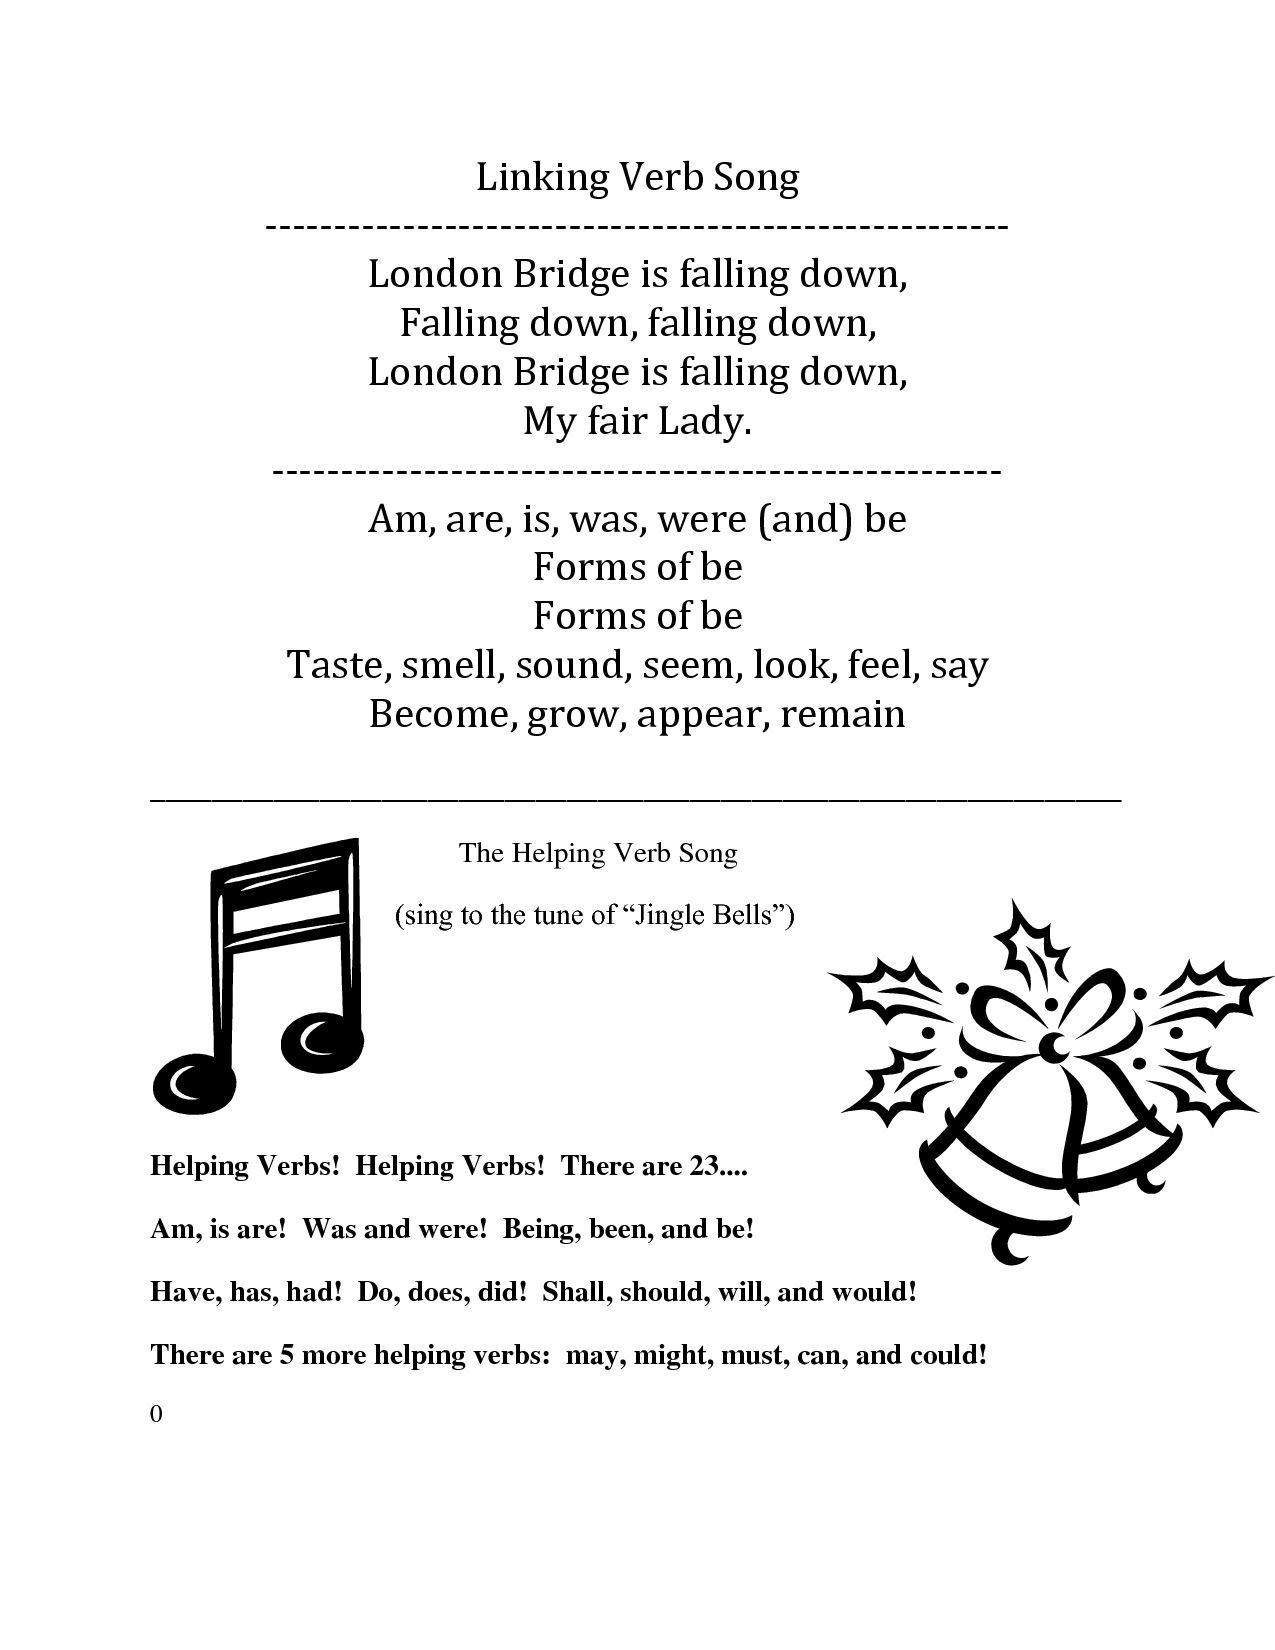 medium resolution of Linking Verb Song lyrics (to London Bridge is falling down) And Helping Verb  Song (to Jingle Bells)   Linking verbs